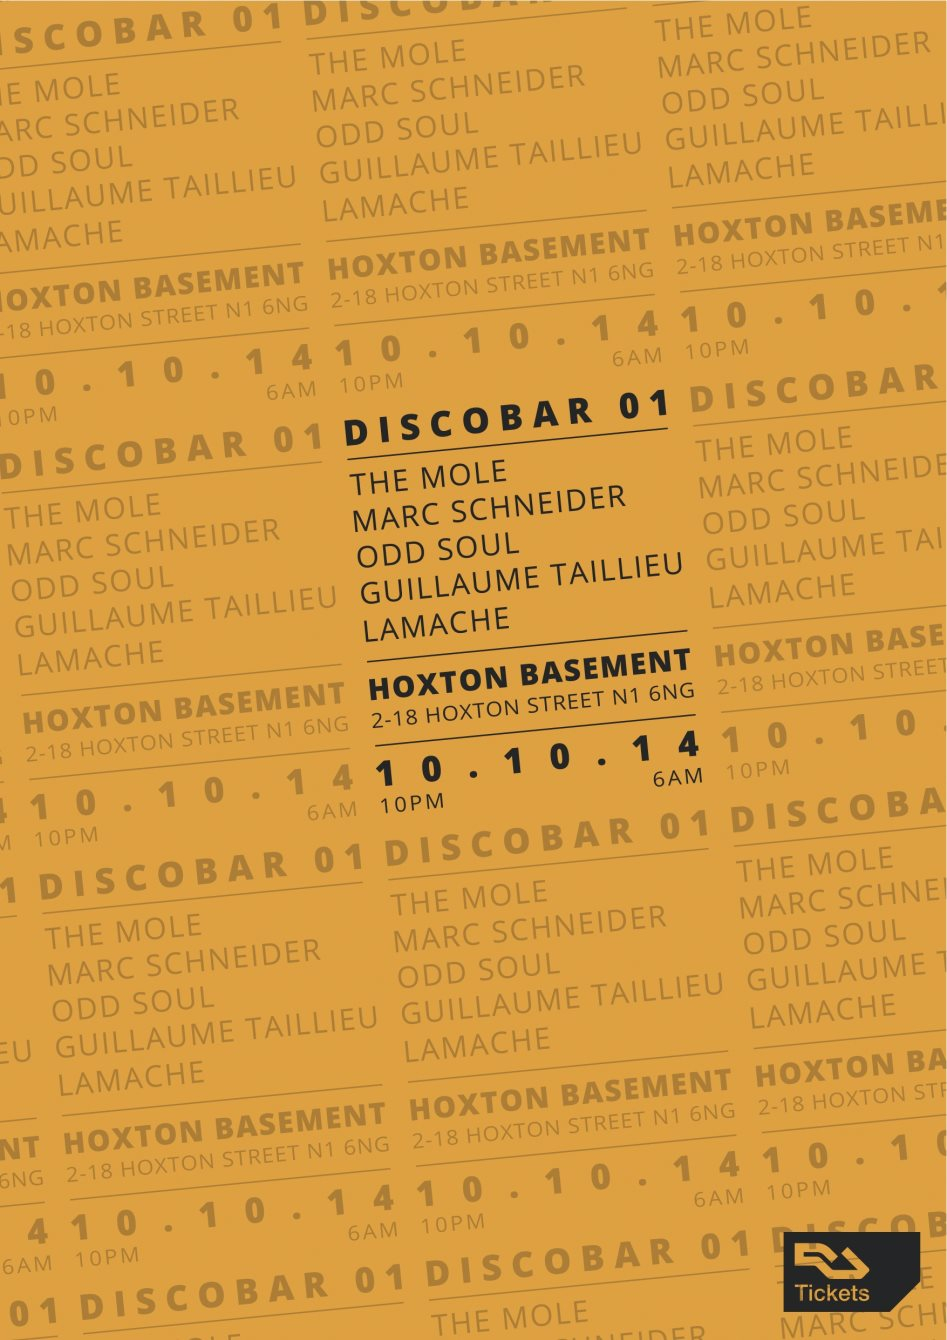 Discobar Release Party presents: The Mole, Marc Schneider, Odd Soul - Flyer front